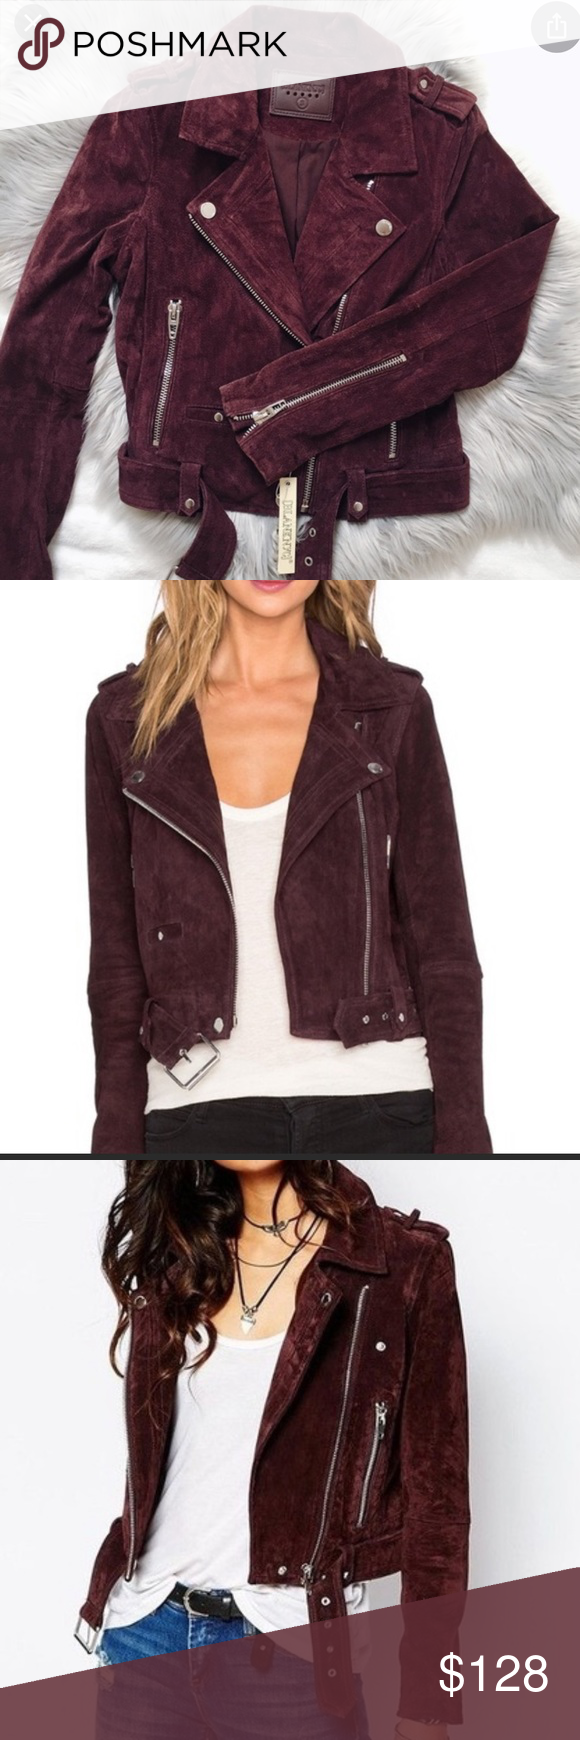 BLANKNYC Burgundy Suede Moto Jacket Size Small in 2020